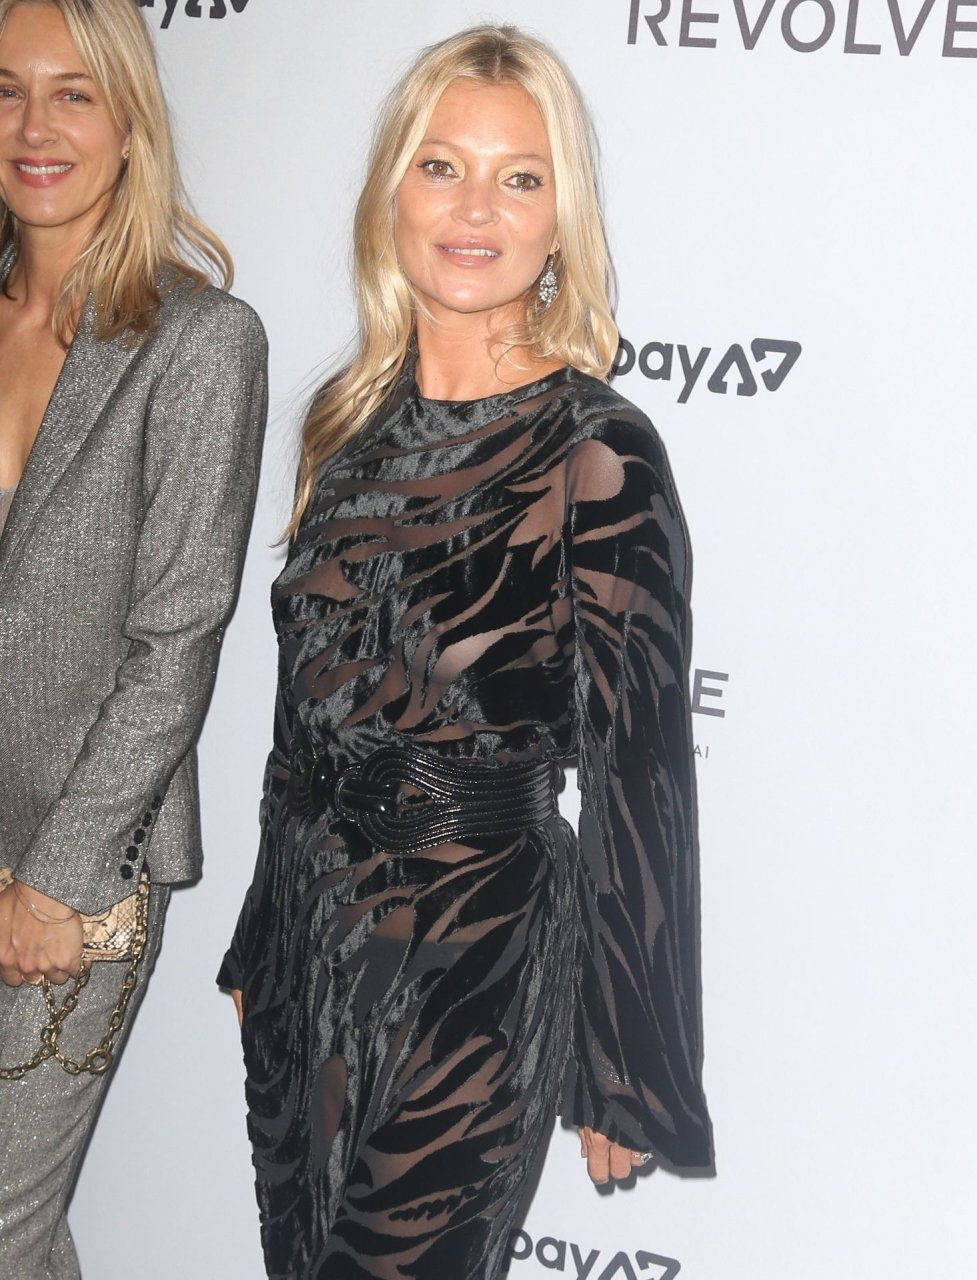 Kate Moss BRALESS at the Daily Front Row Fashion Media Awards, New York, 09/05/2019.